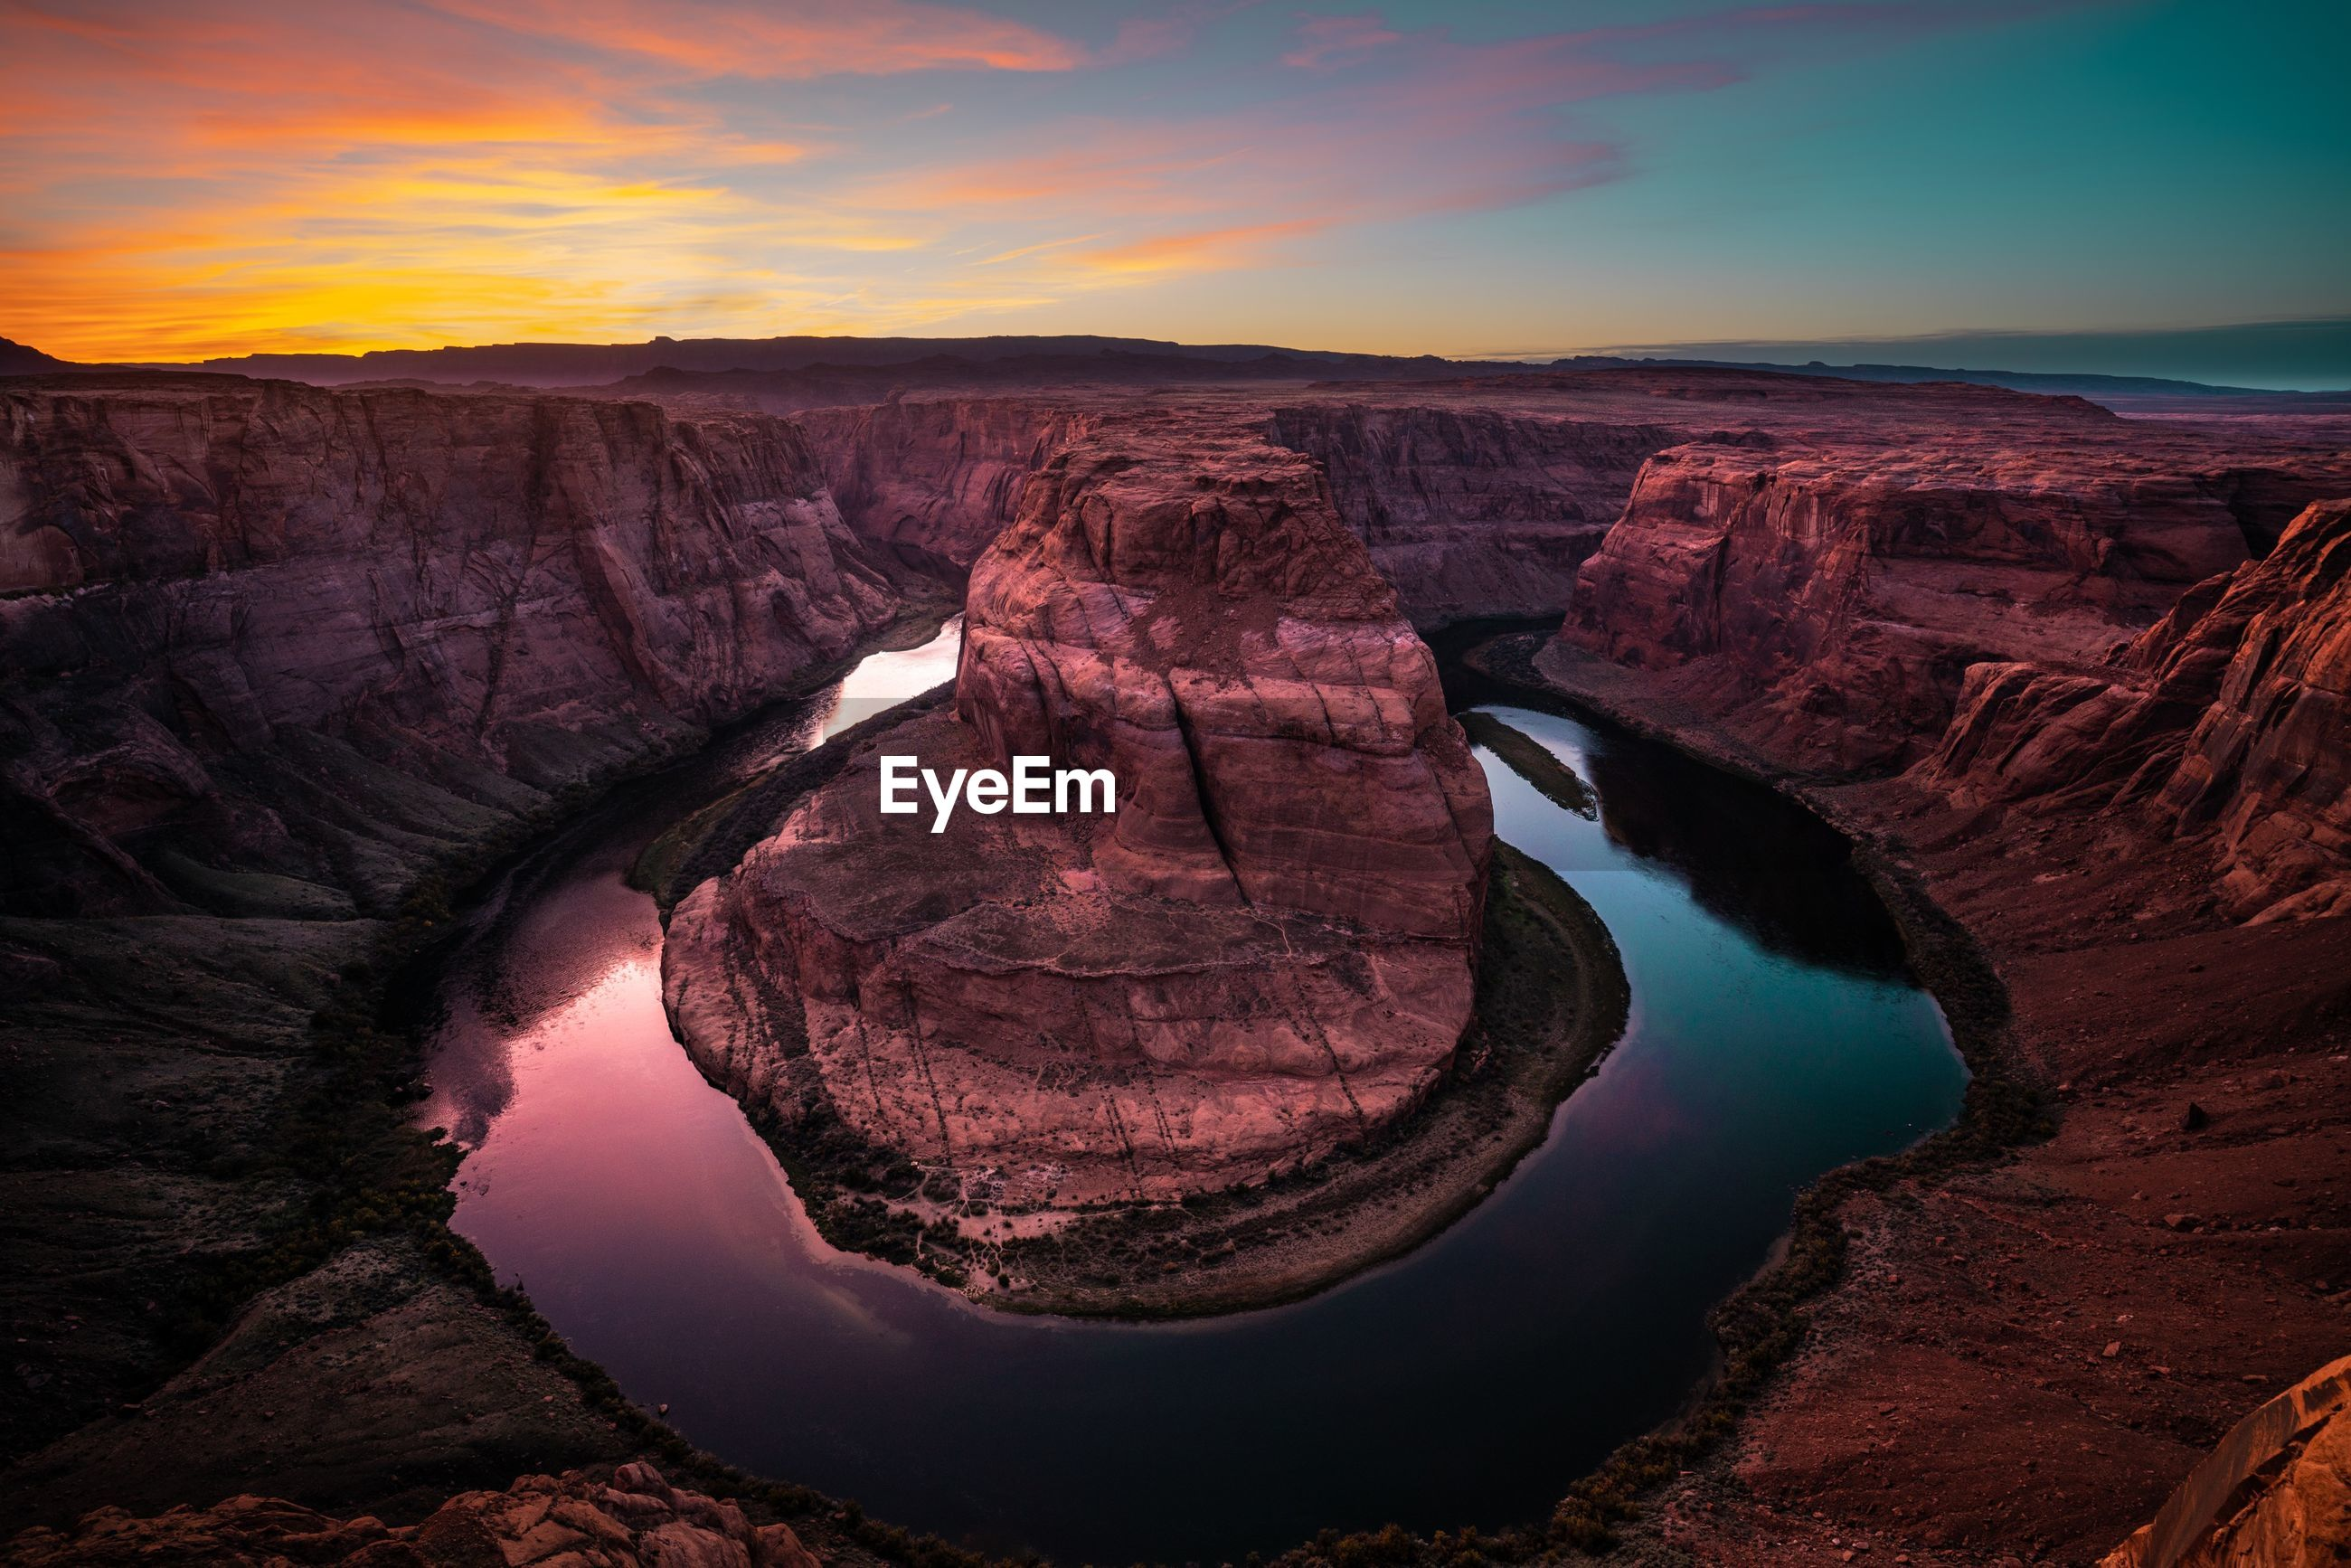 Scenic view of horseshoe bend against sky during sunset